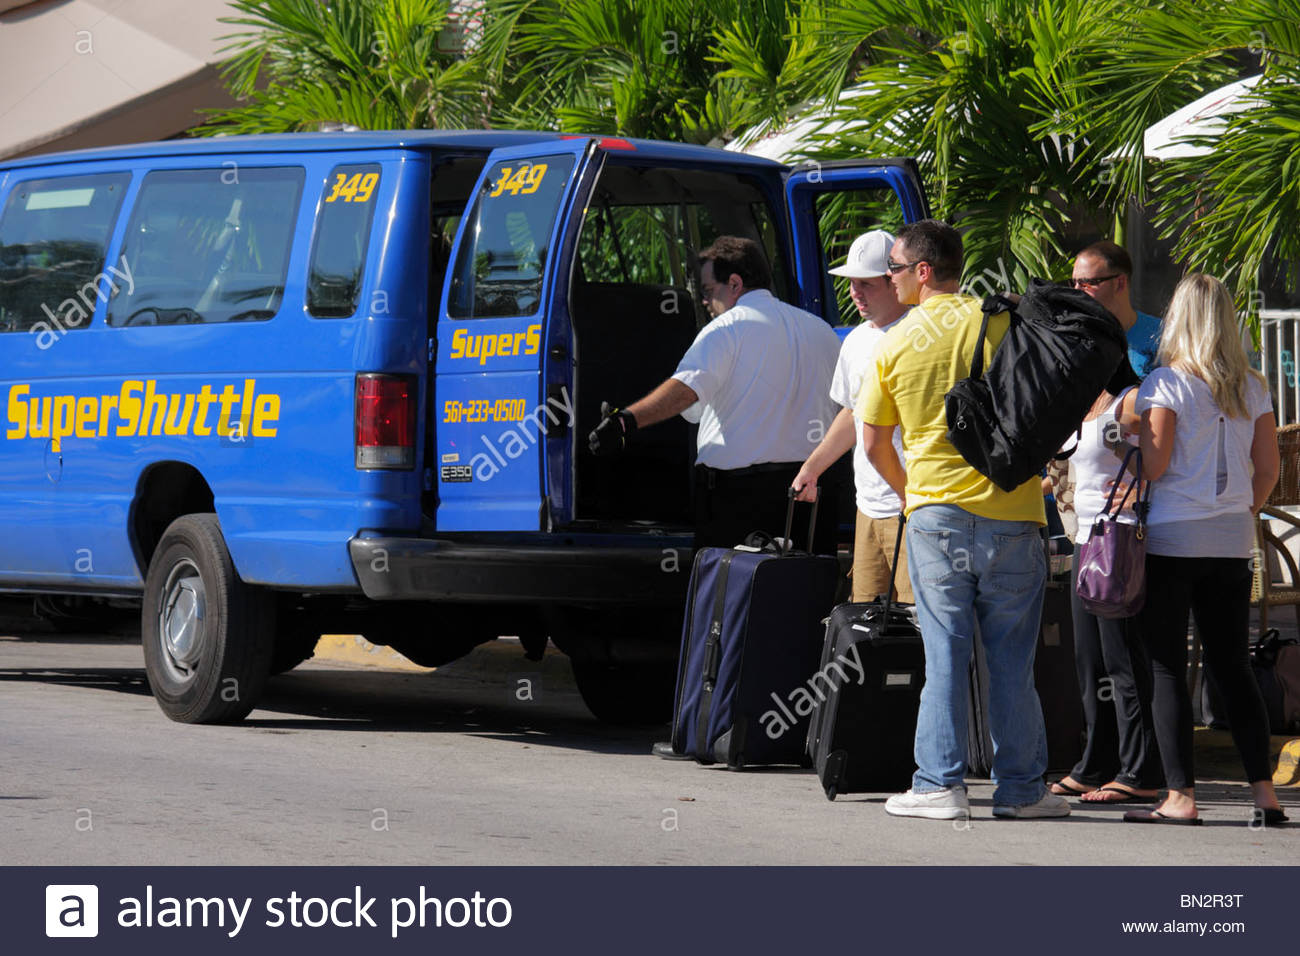 super shuttle miami airport